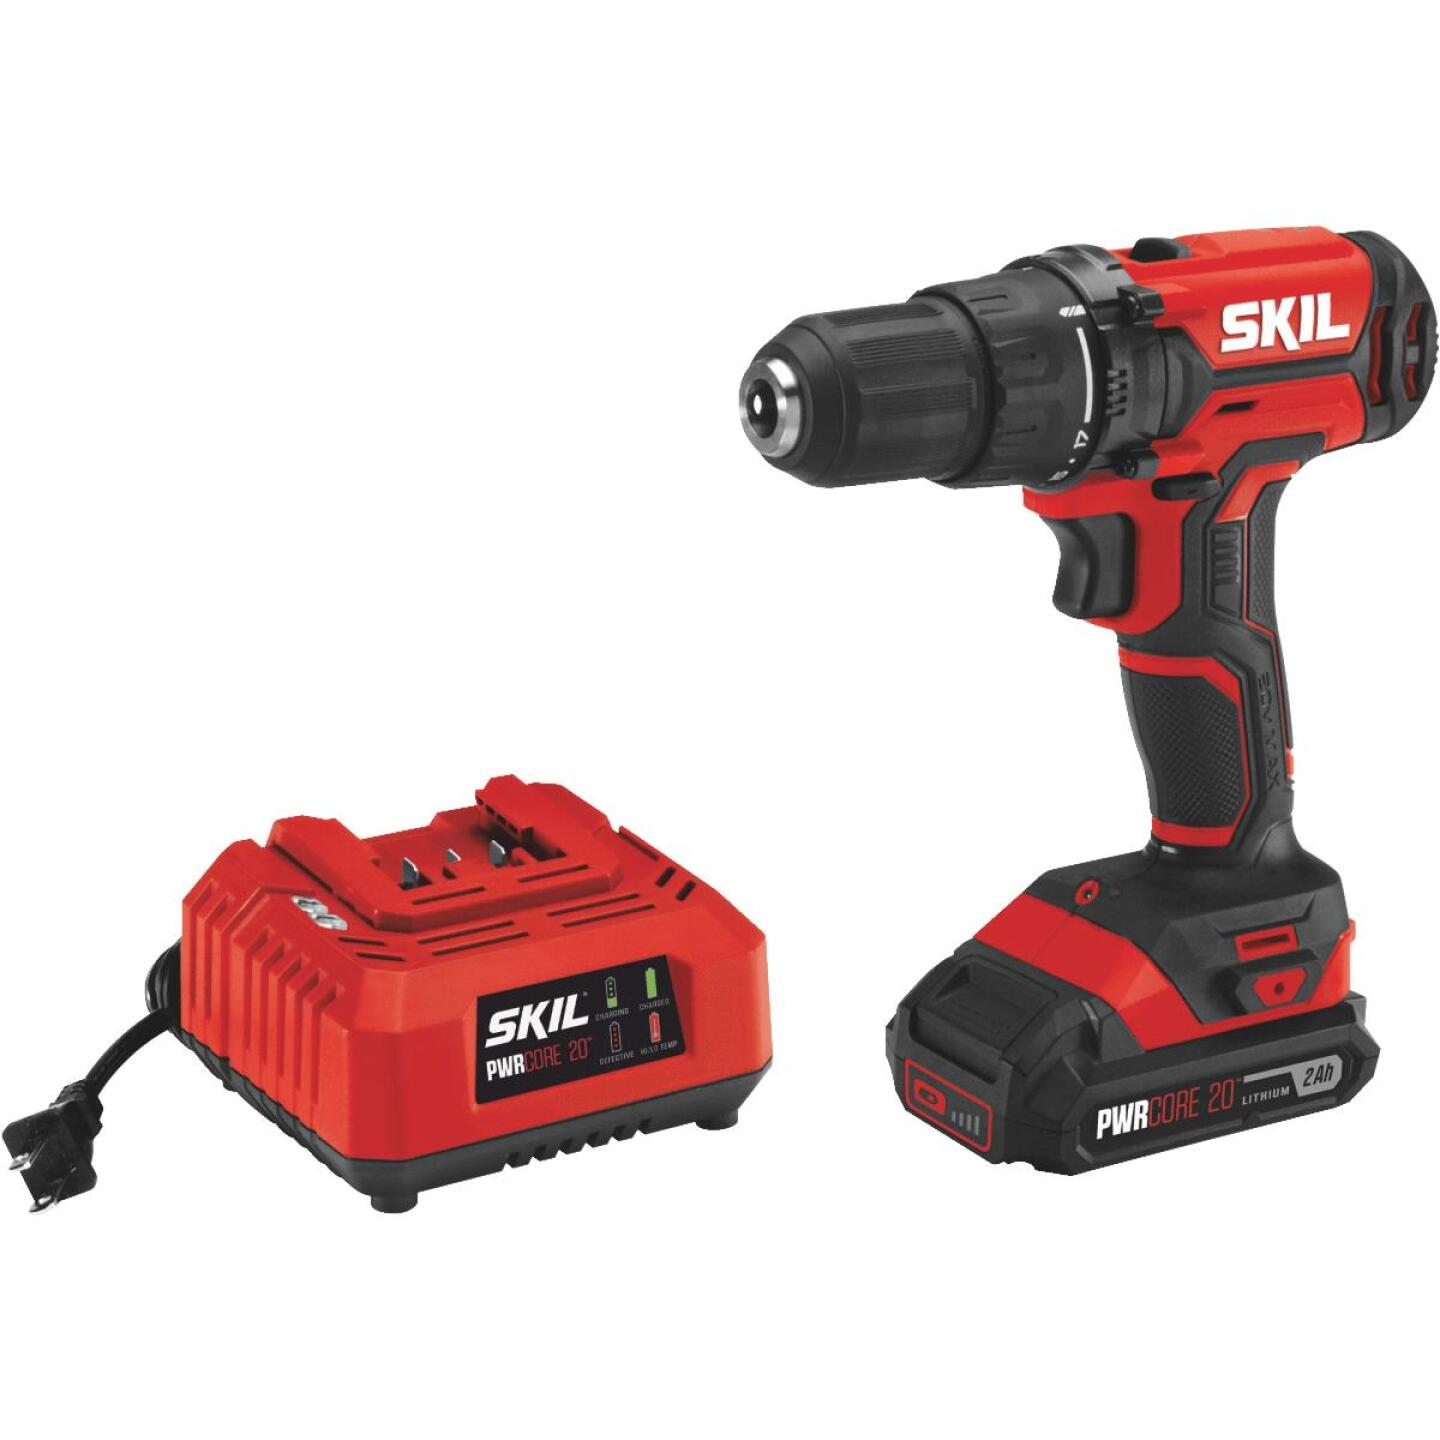 SKIL PWRCore 20 Volt Lithium-Ion 1/2 In. Cordless Drill/Driver Kit Image 1